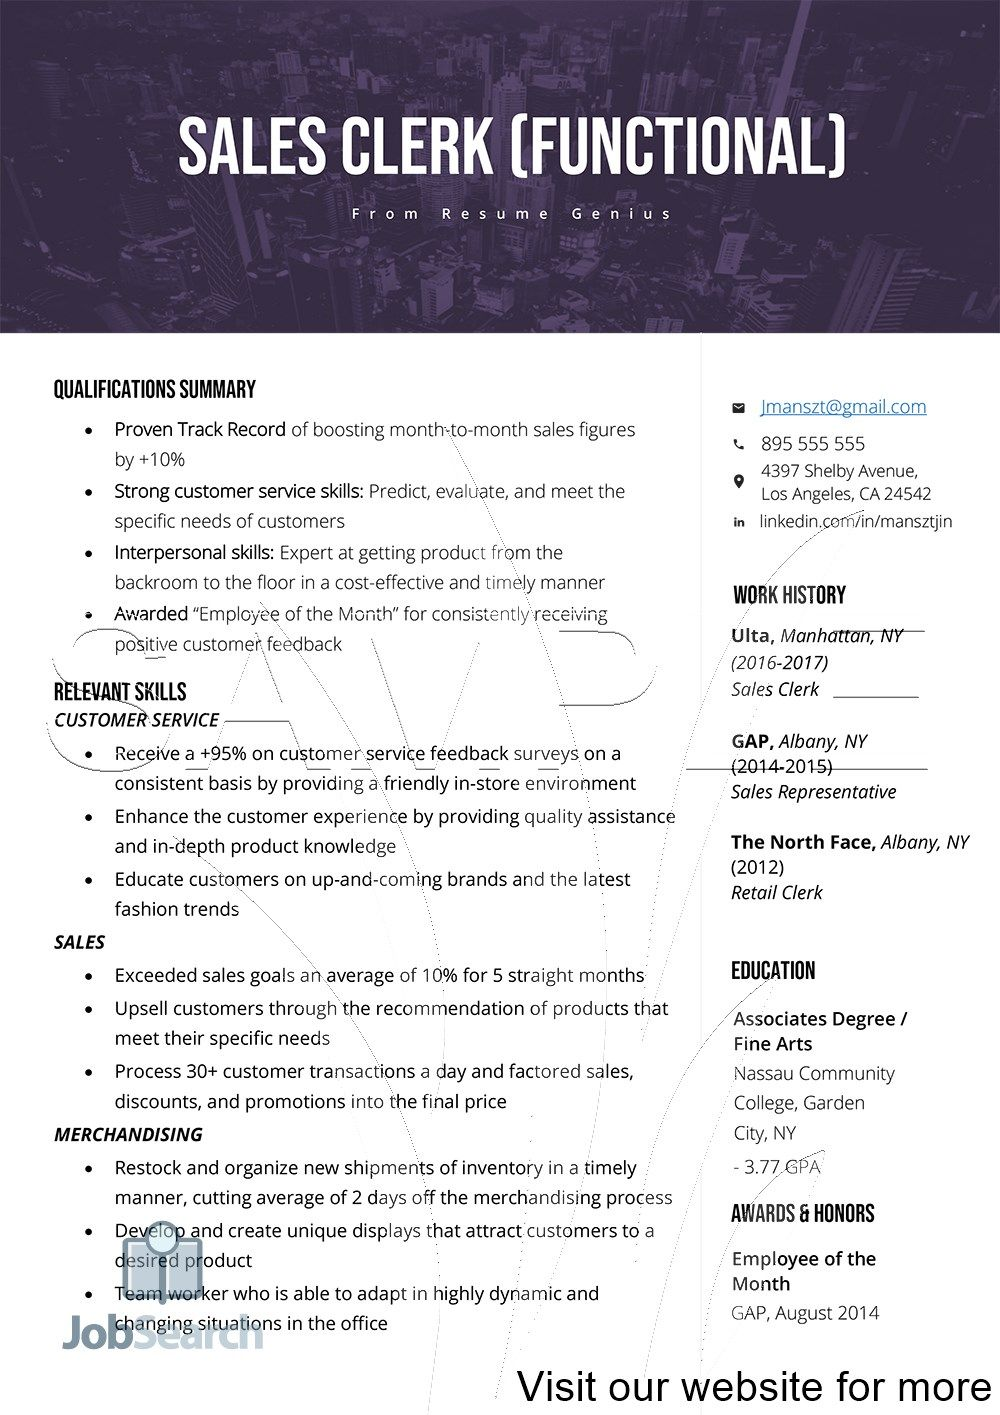 Sales Clerk Functional Resume Examples 2020 in 2020